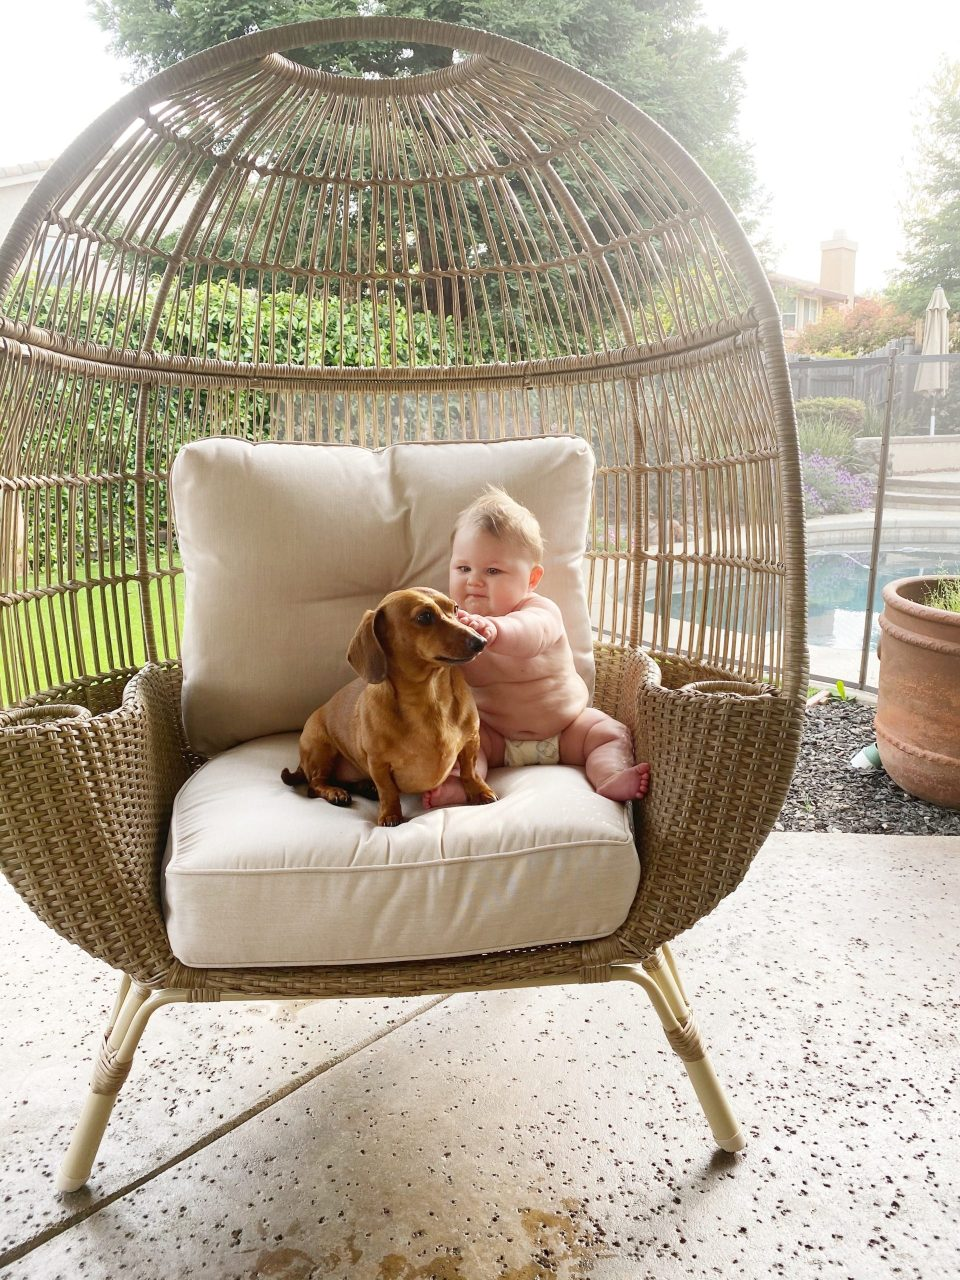 Lily and Mr. Big in the egg chair